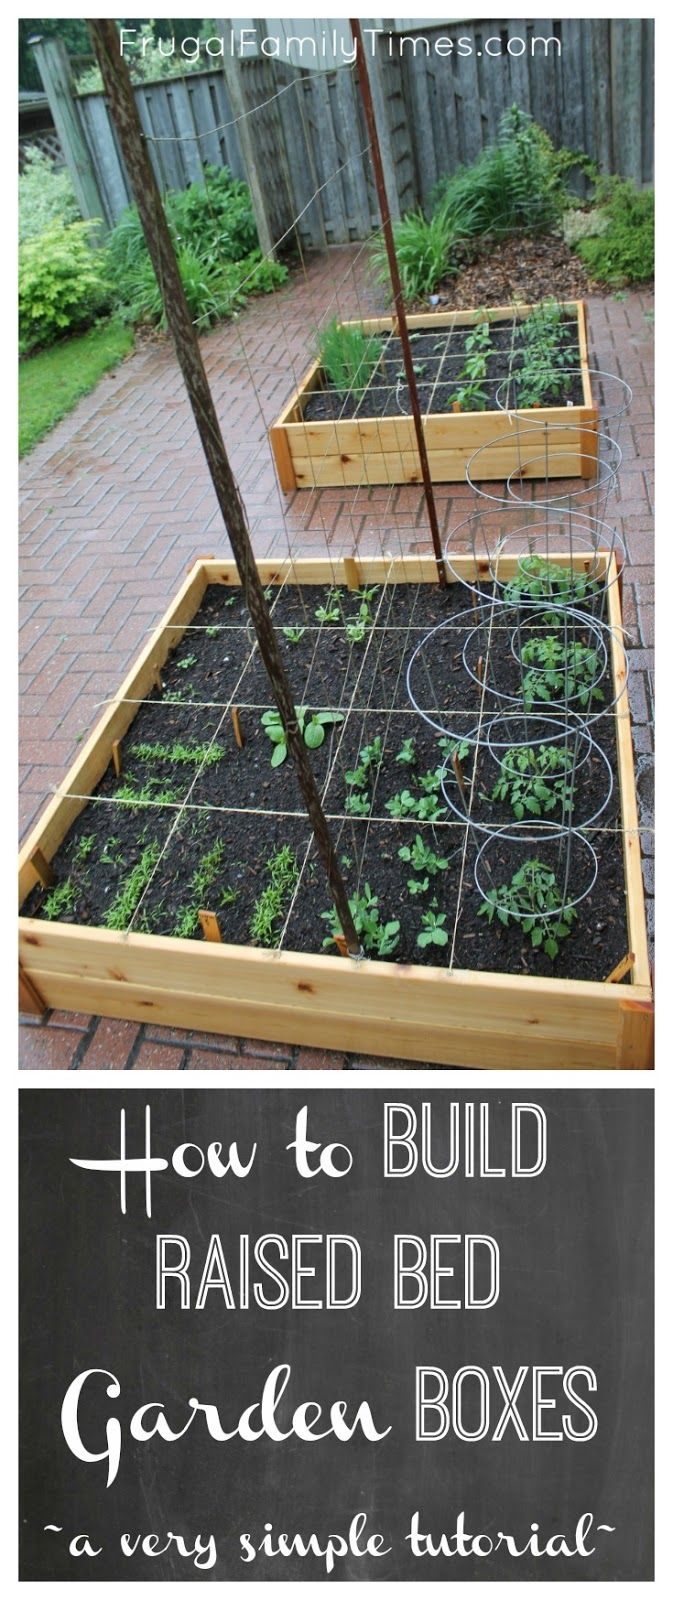 How To Build Raised Garden Boxes Diy Grow Vegetables Anywhere